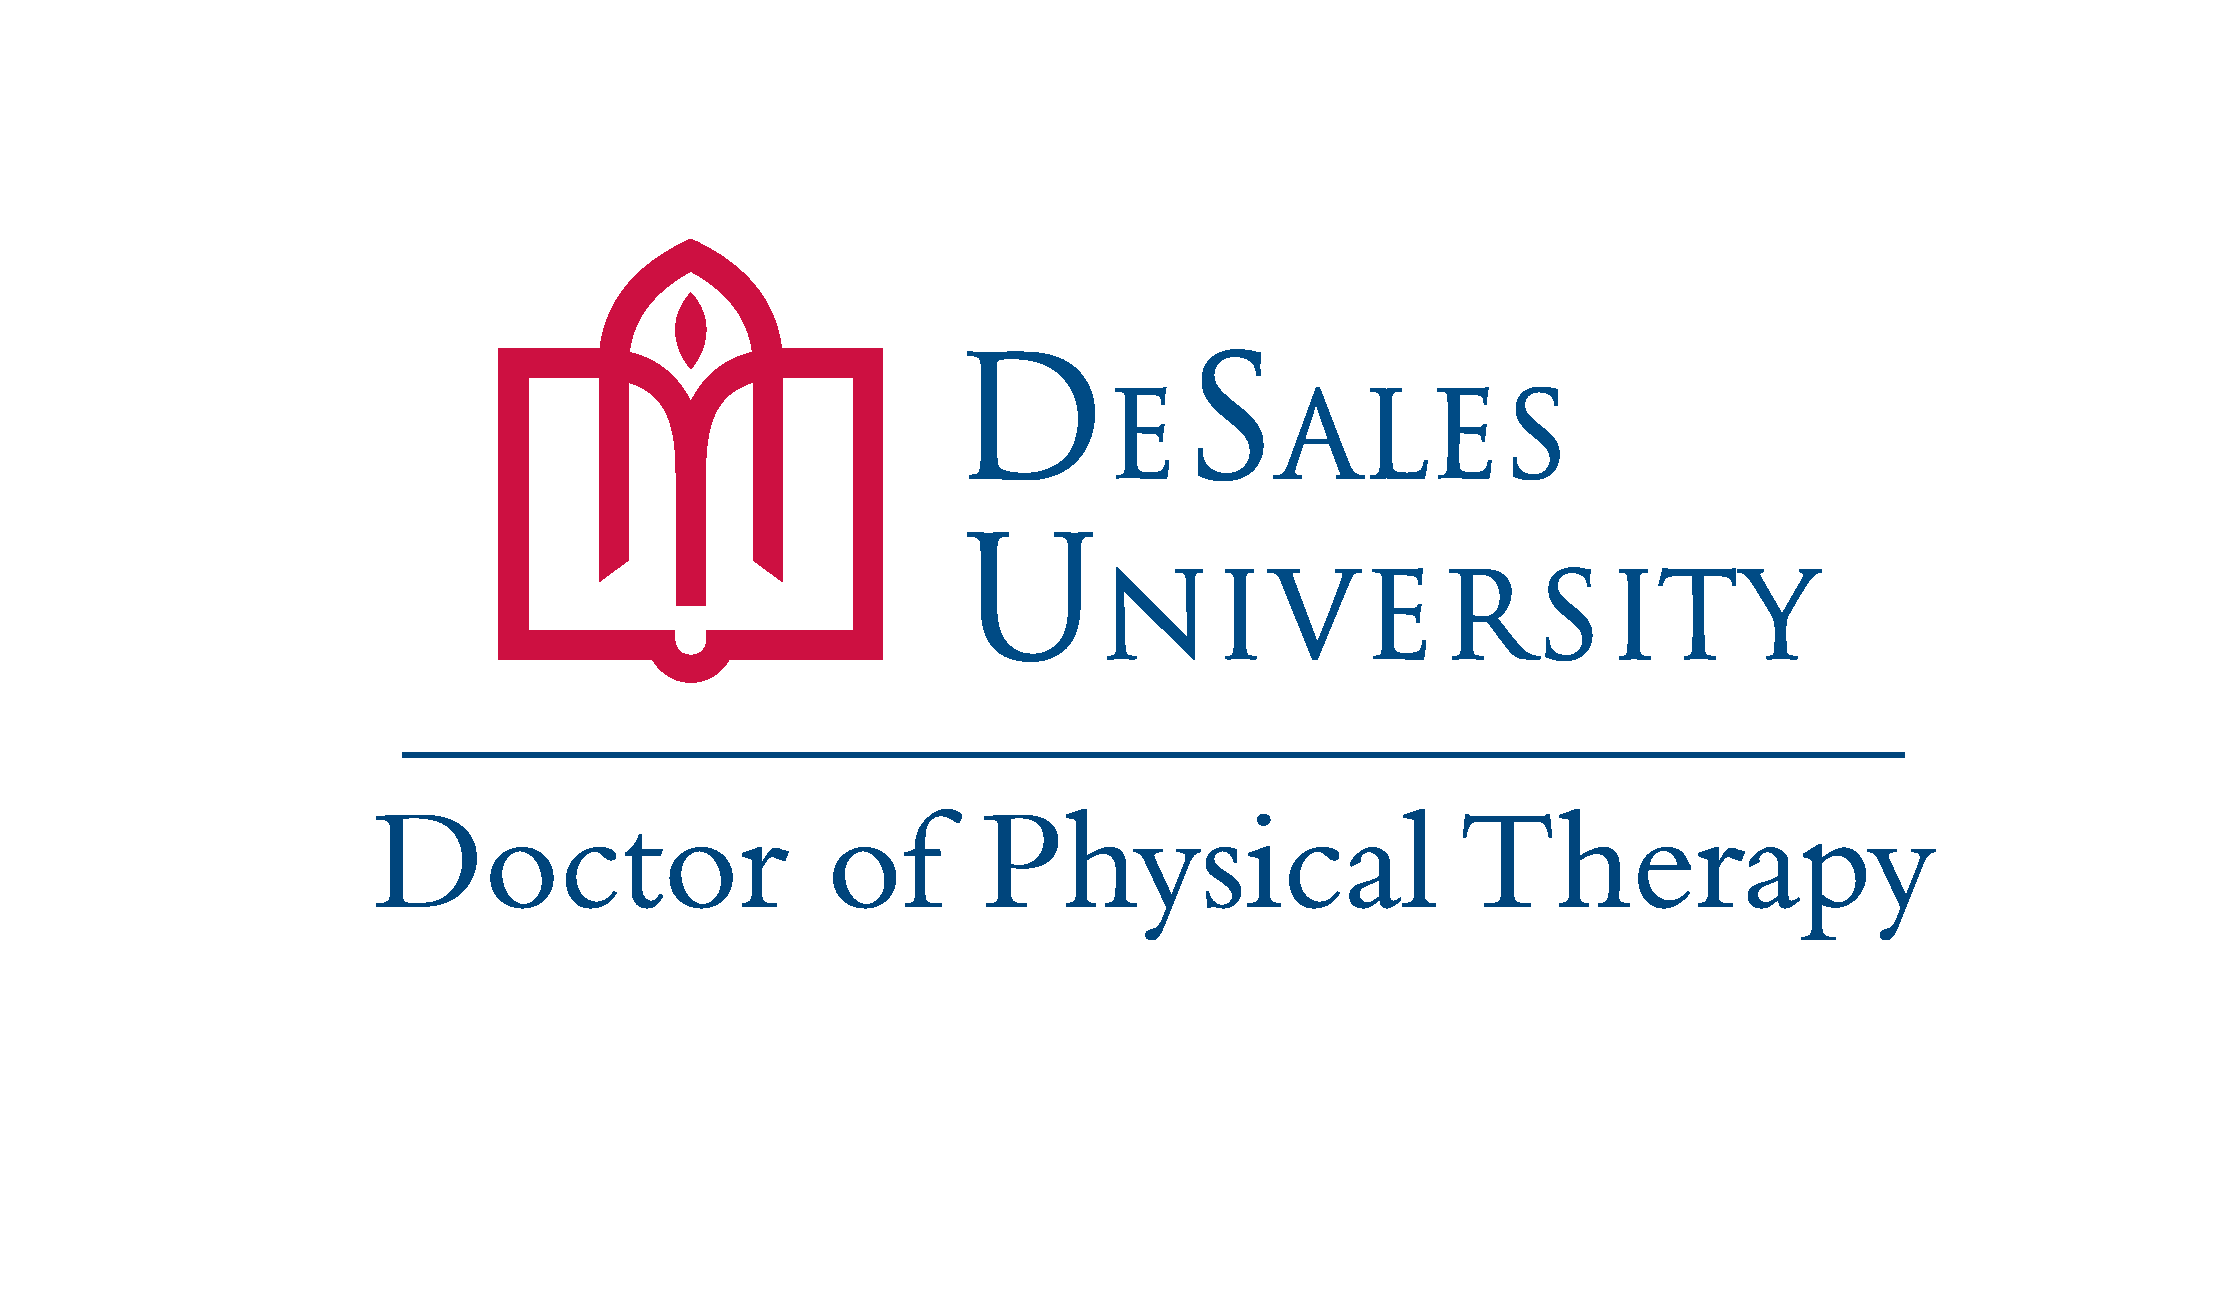 DeSales University Doctor of Physical Therapy